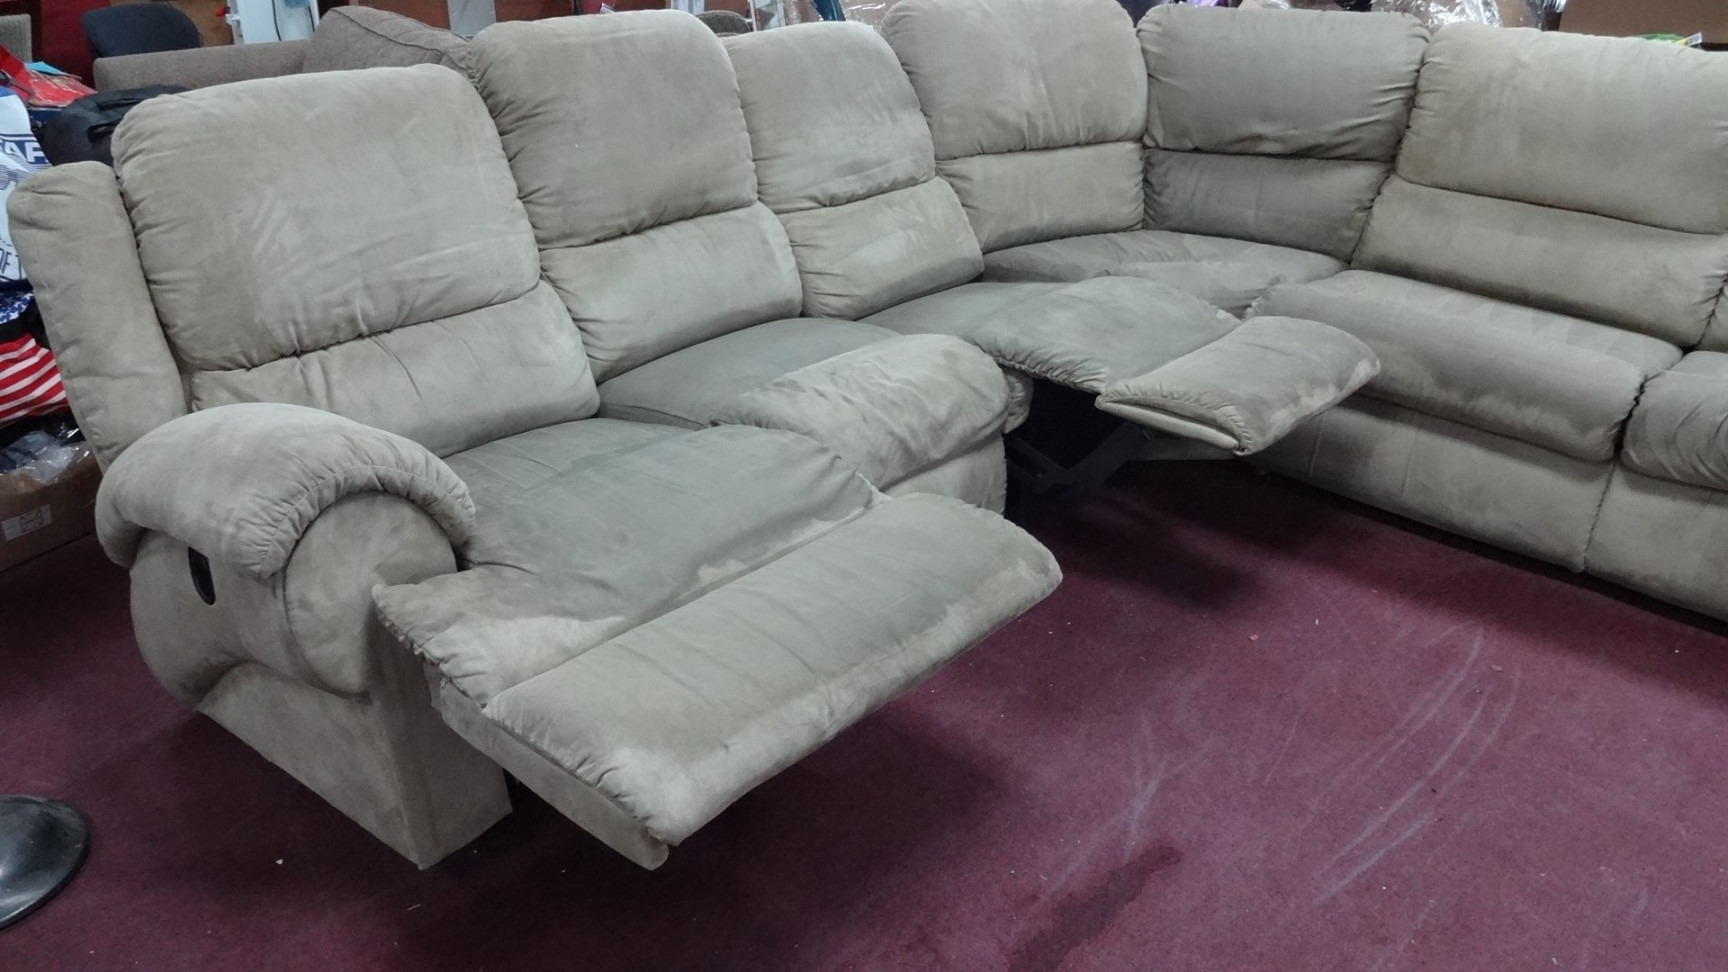 Sofas : Magnificent Leather Sectional Sofa Lazy Boy Furniture Lazy pertaining to Sectional Sofas At Lazy Boy (Image 15 of 15)